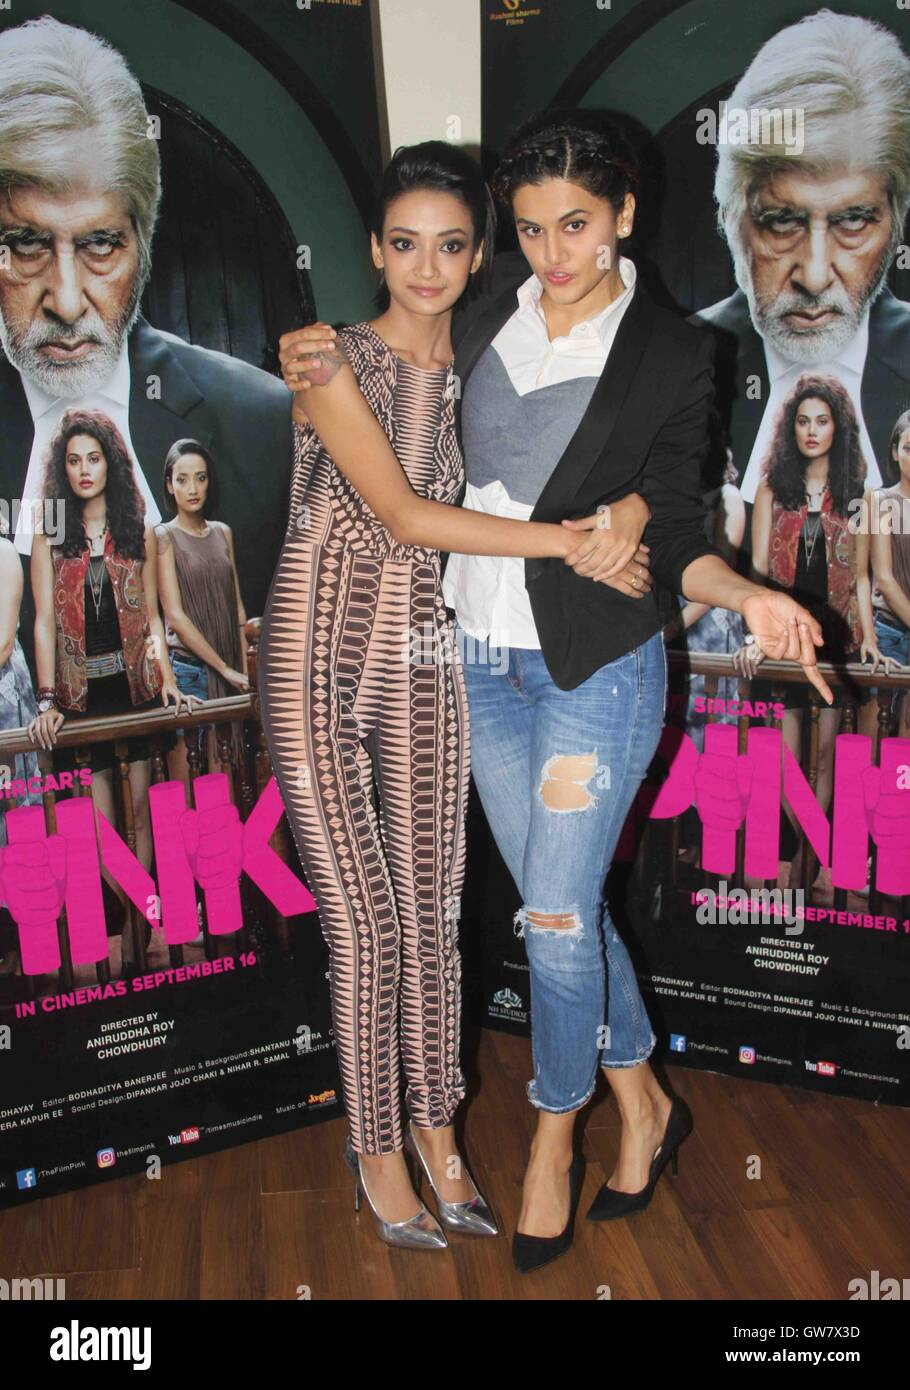 Pink (2016 Film) : (2016, film), Bollywood, Actors, Taapsee, Pannu, Andrea, Tariang, During, Media, Stock, Photo, Alamy